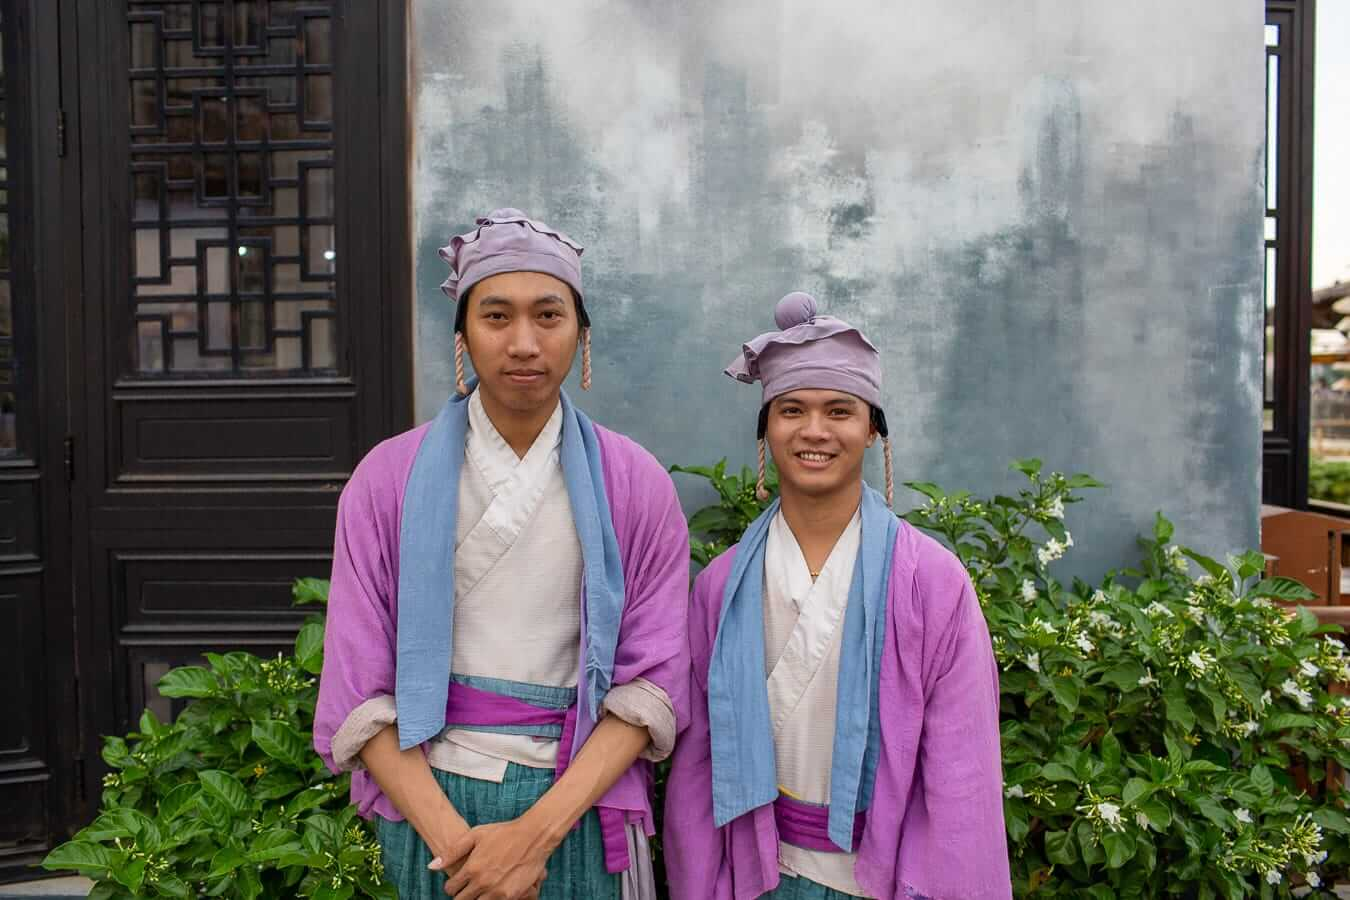 Vietnamese performers in purple